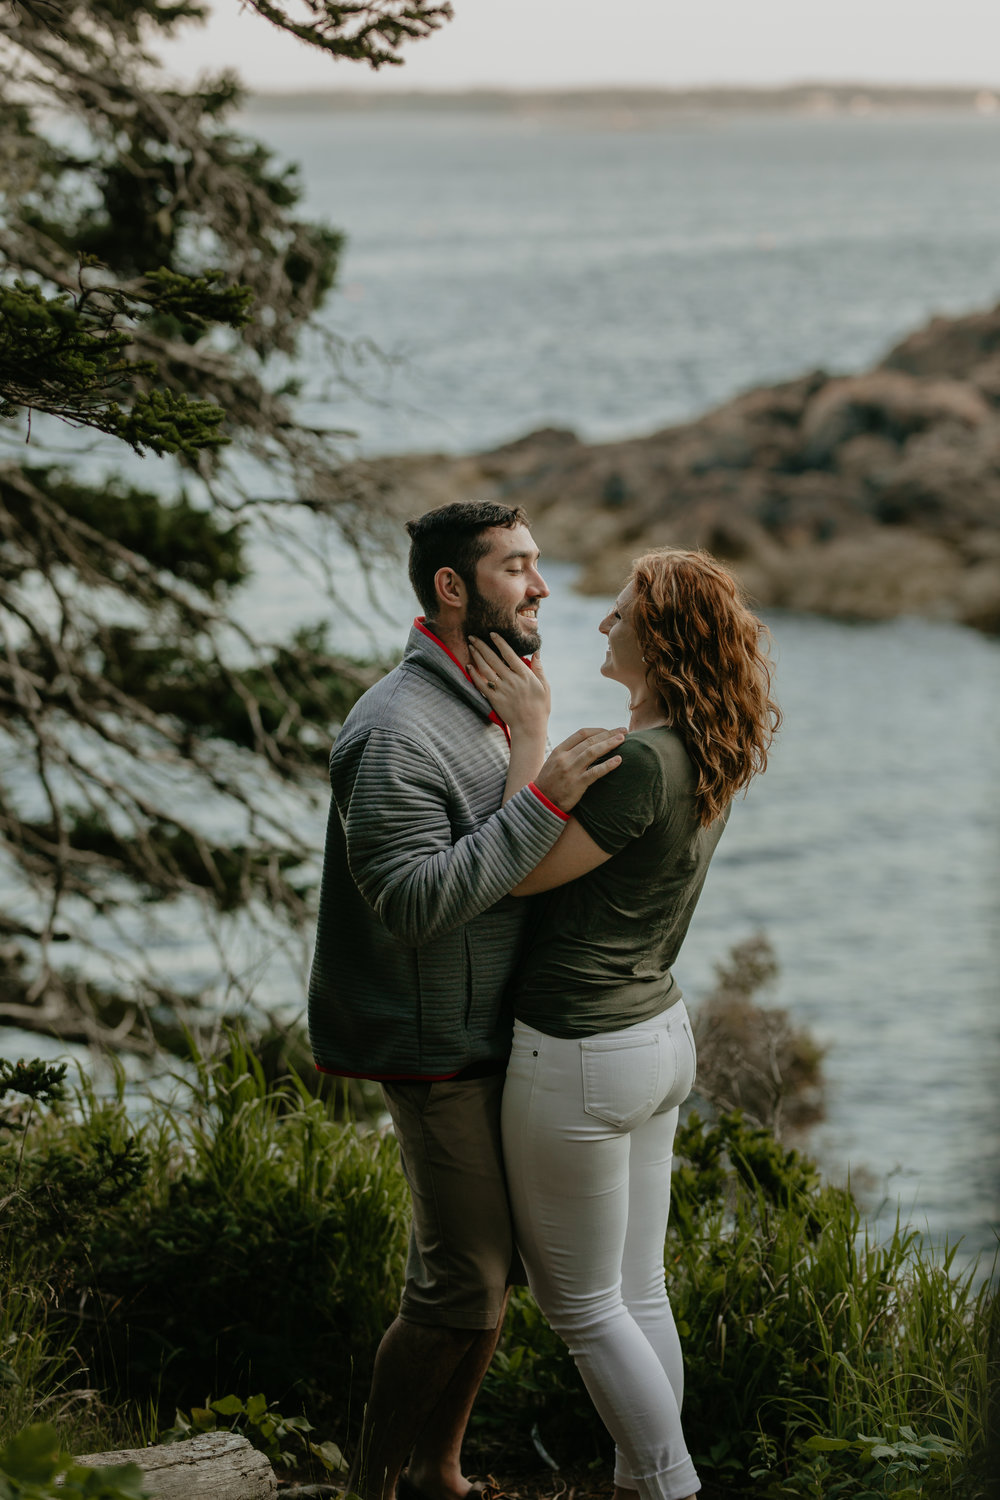 nicole-daacke-photography-acadia-national-park-engagement-photos-session-little-hunters-beach-sunset-cadillac-mountain-thunder-hole-otter-cliffs-couples-session-acadia-elopement-photographer-pine-trees-ocean-maine-44.jpg